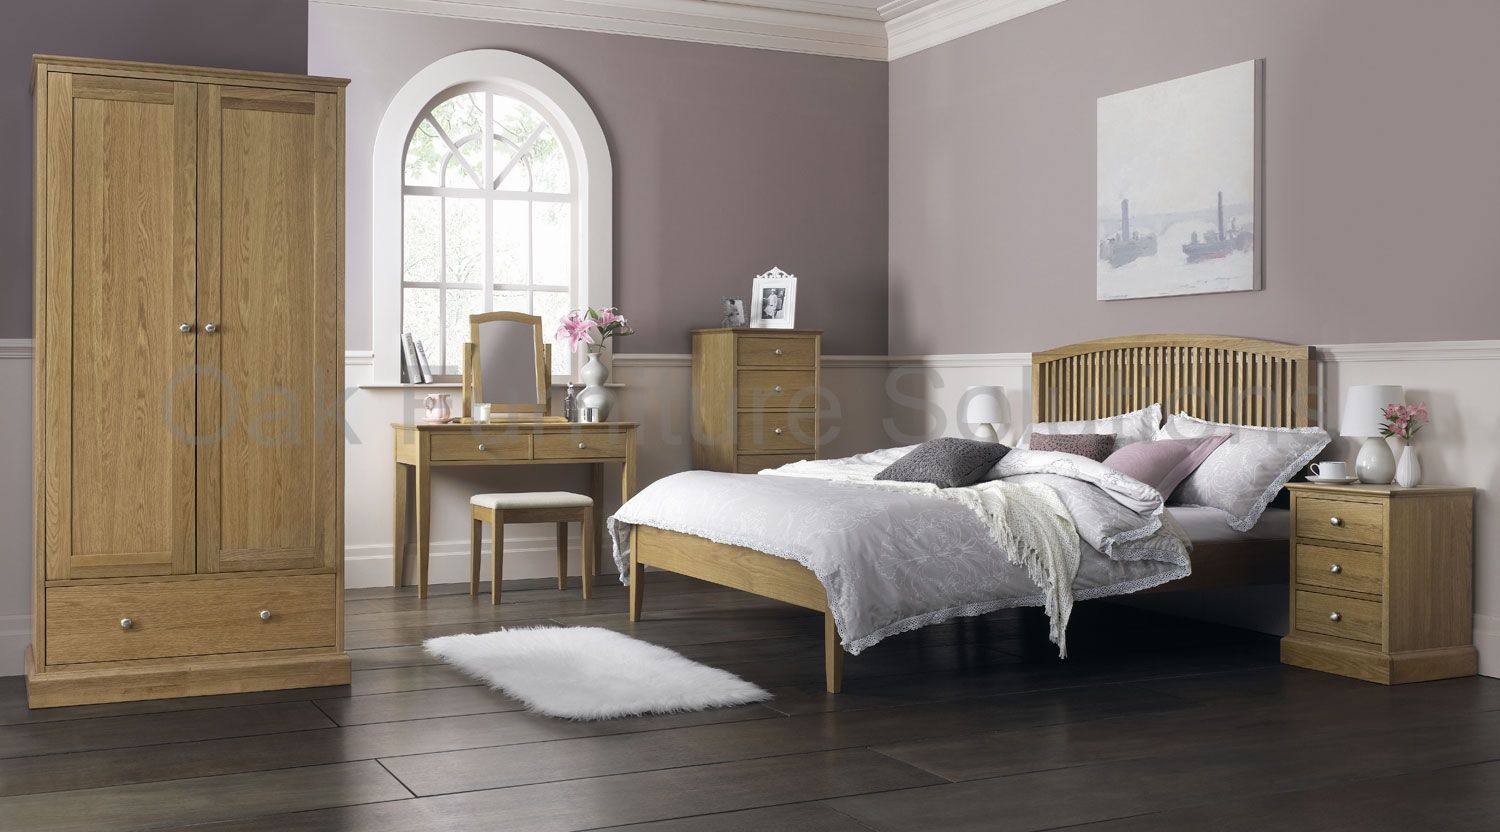 Oak Furniture Light Oak Bedroom Set Home Decor Bedroom Bedroom - Bedroom-colors-set